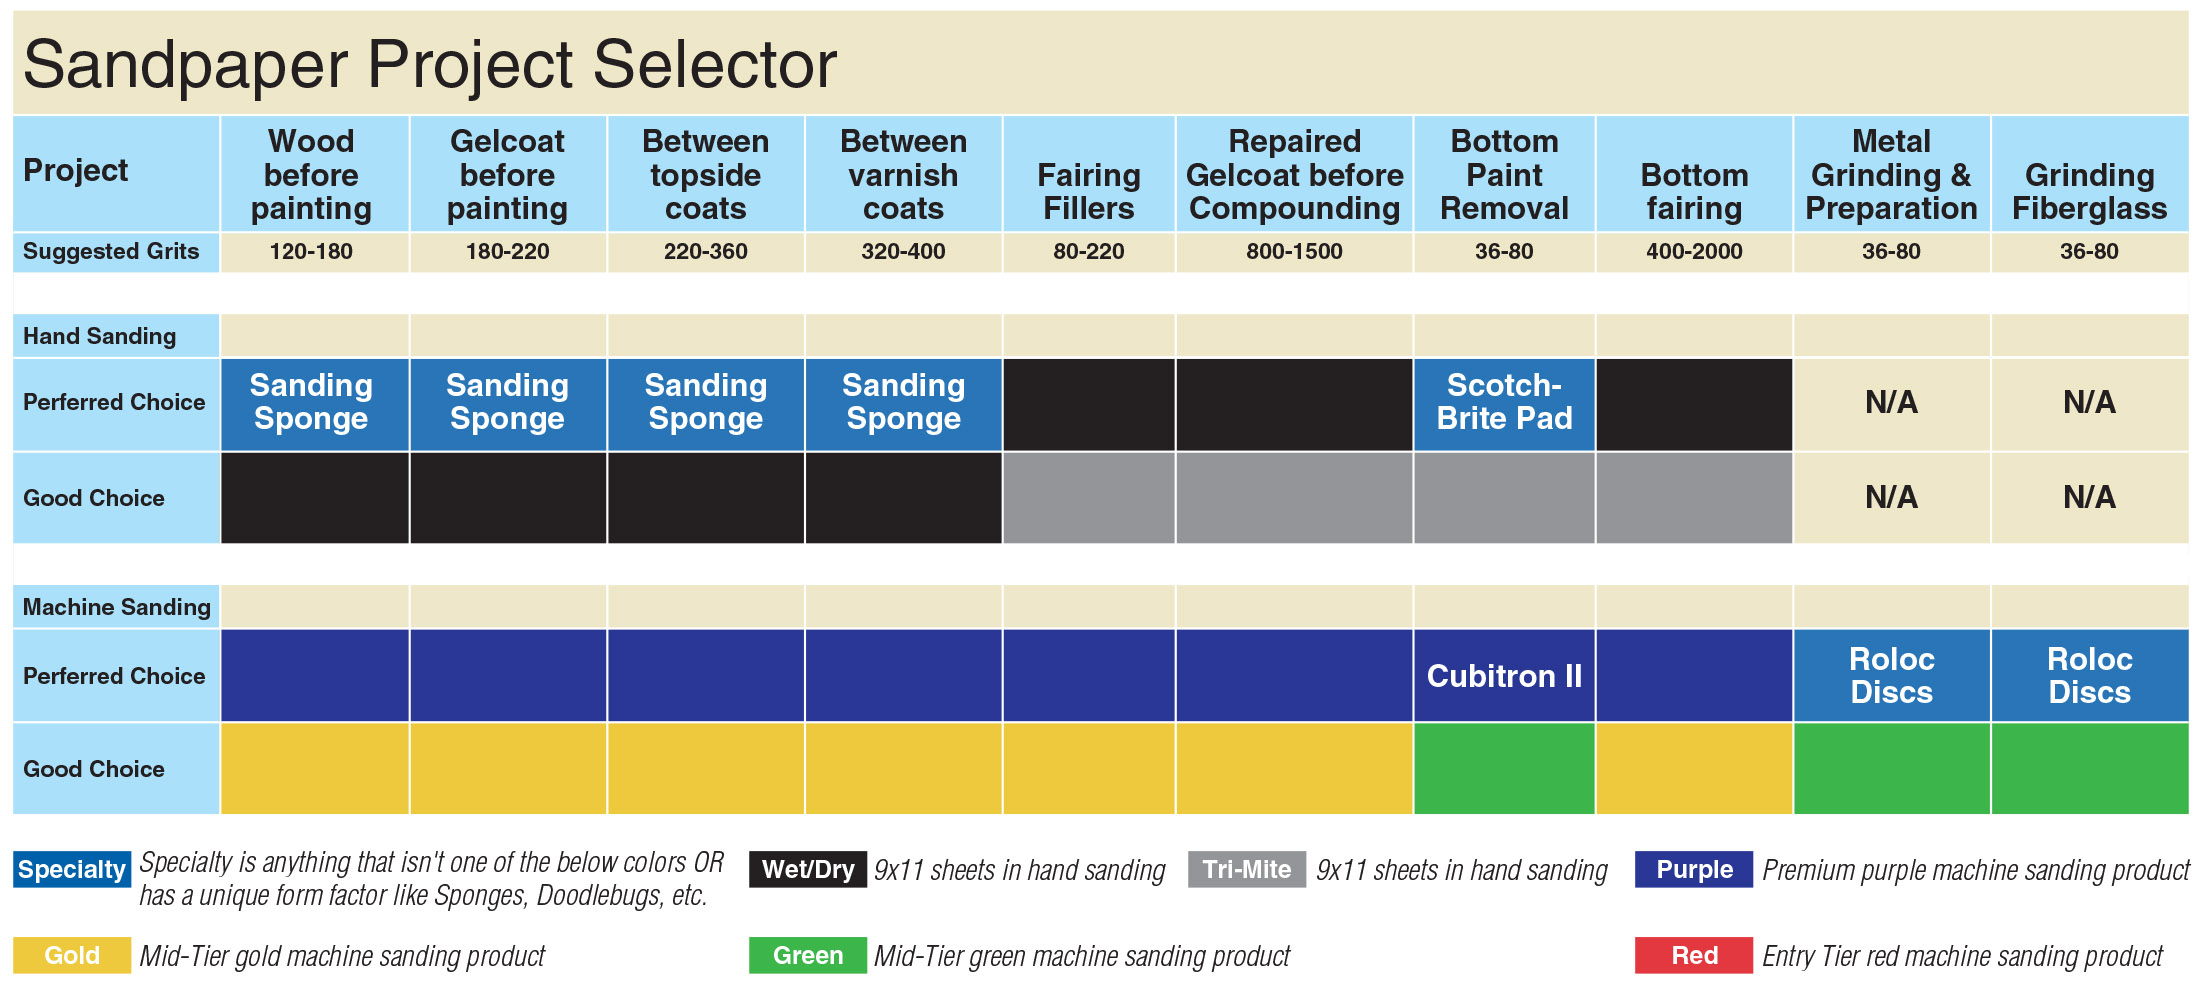 Sandpaper project selector chart